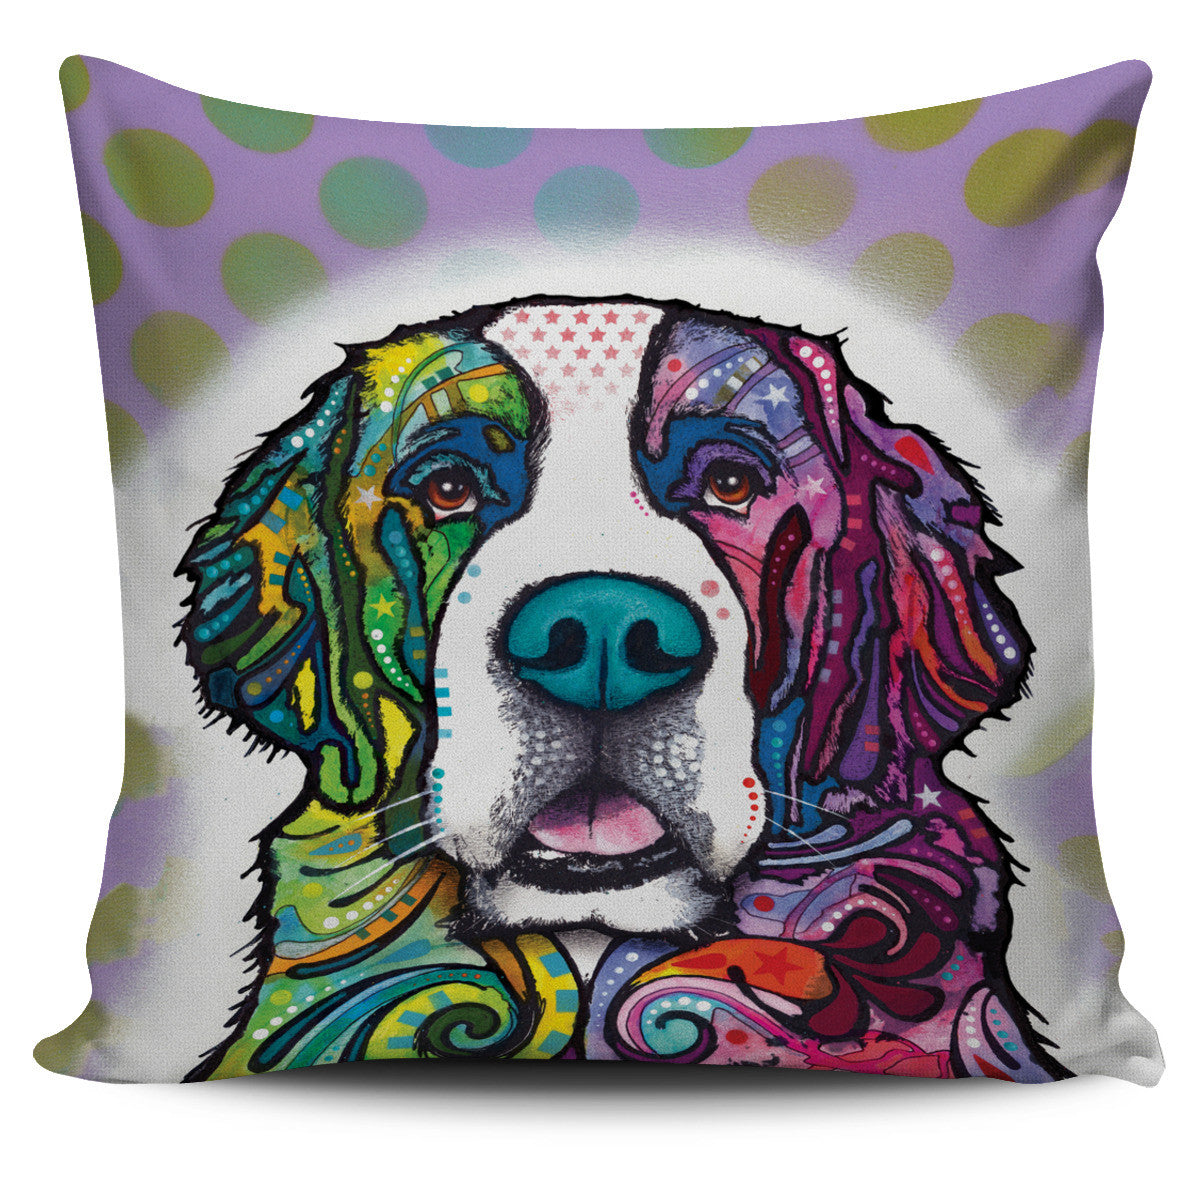 St. Bernard Pillow Covers Offer